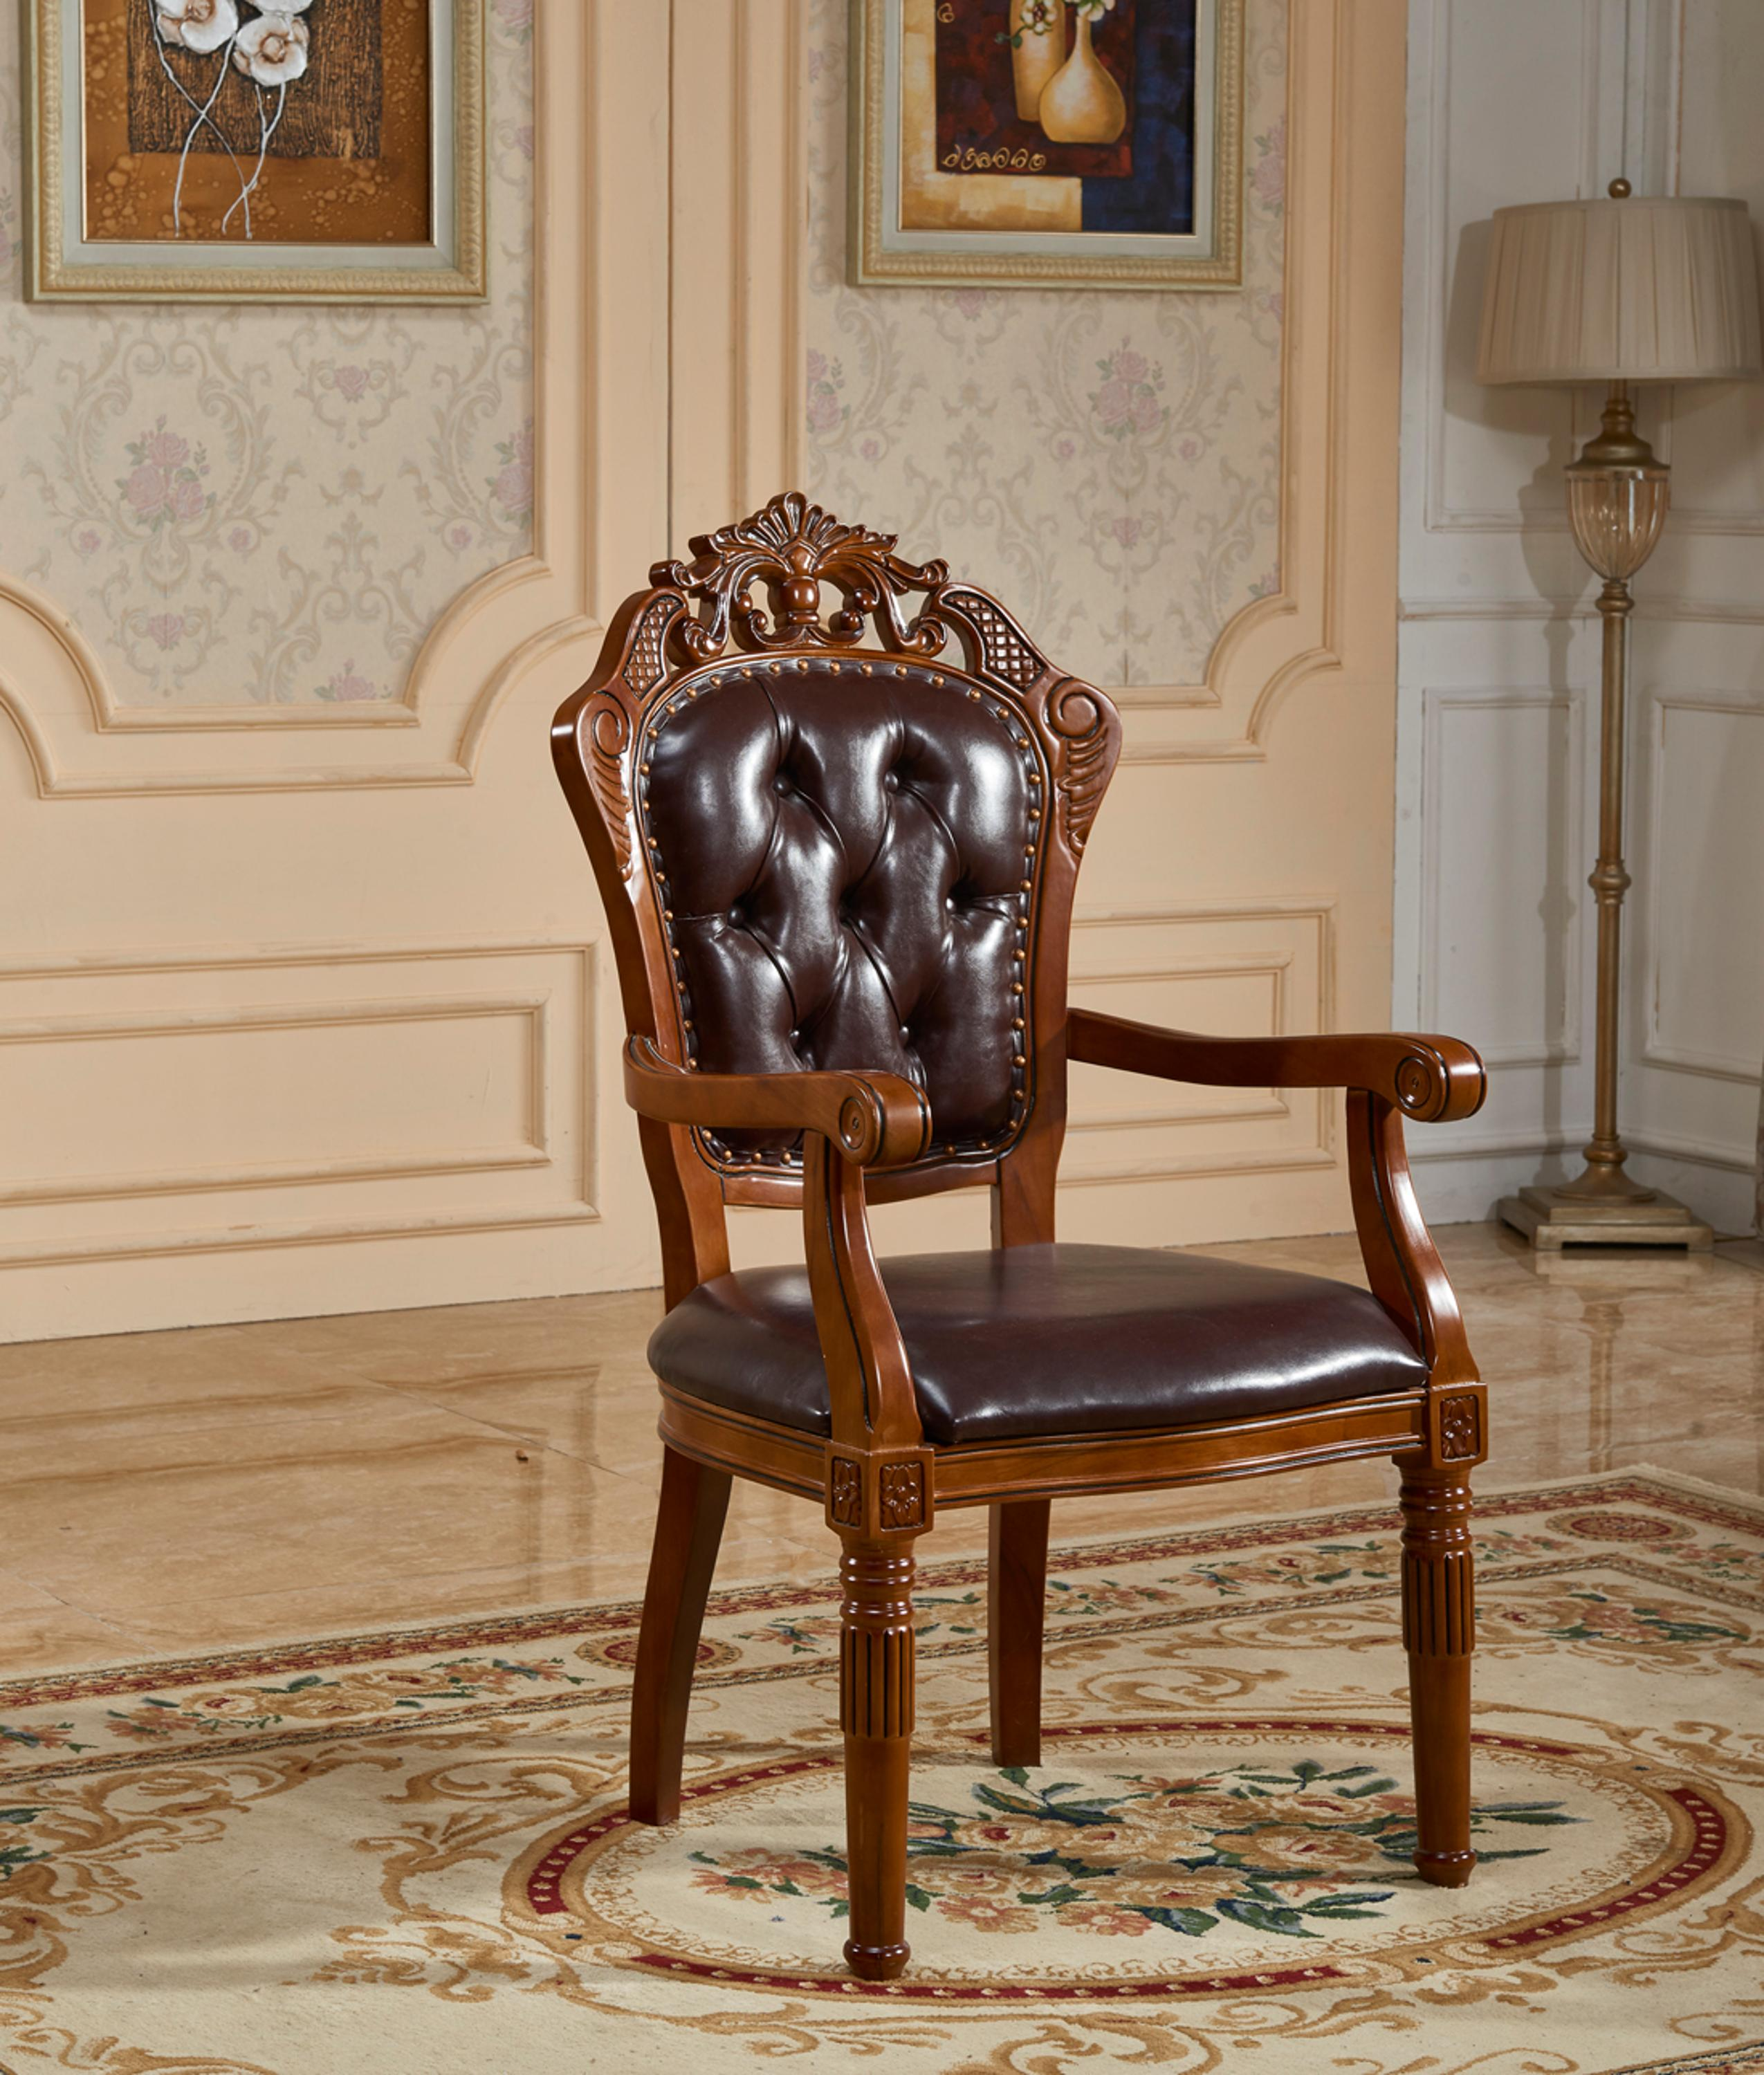 Handle Italian Royal Wood Design High Antique Reproduction Dining Chairs